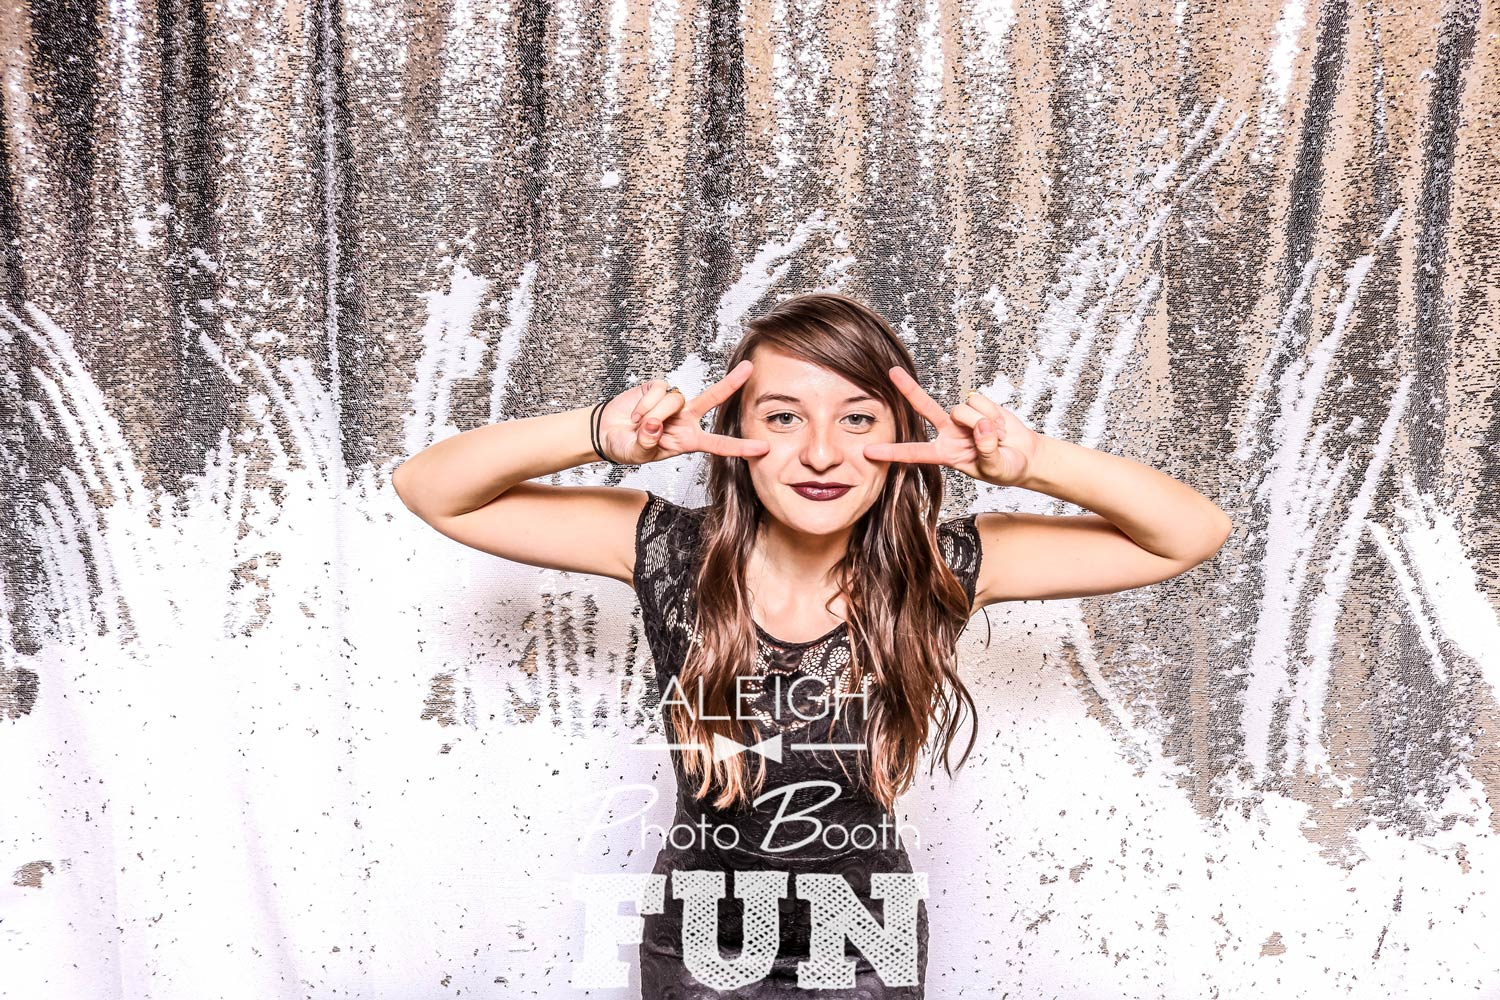 White-Silver-Sequin-Raleigh-Photo-Booth-3